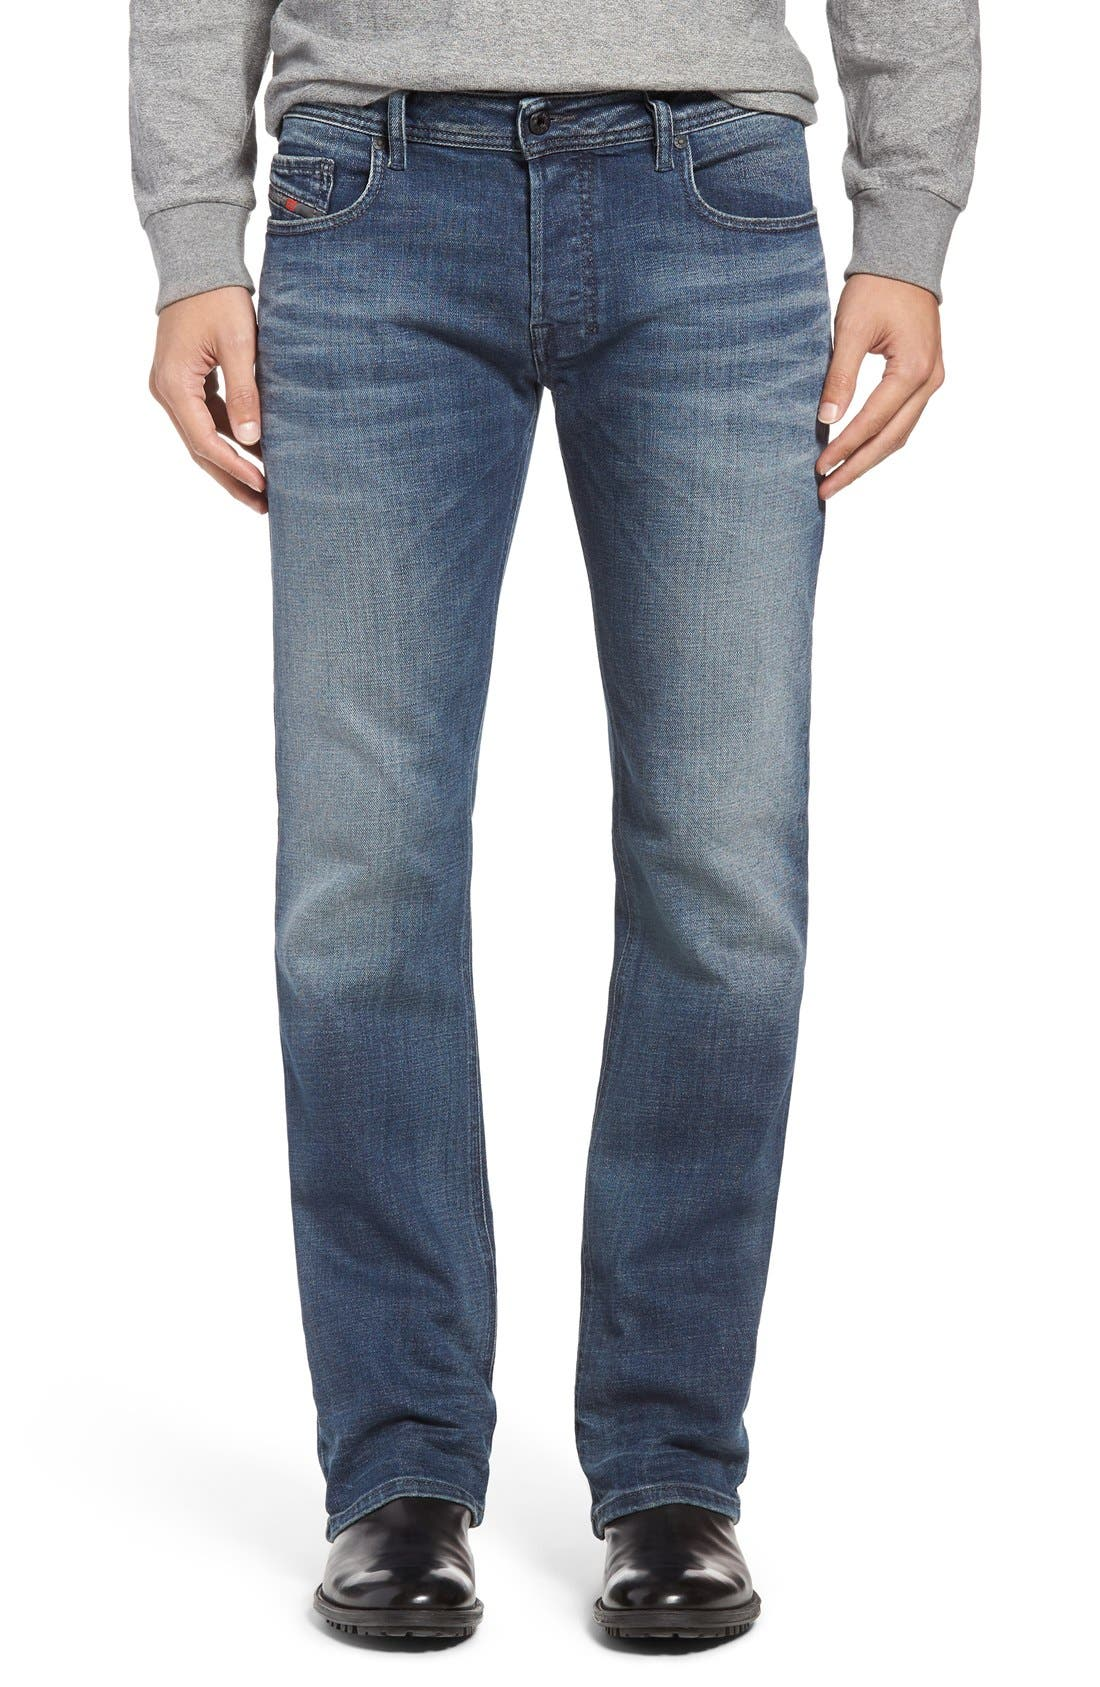 Zatiny Bootcut Jeans,                             Main thumbnail 1, color,                             400